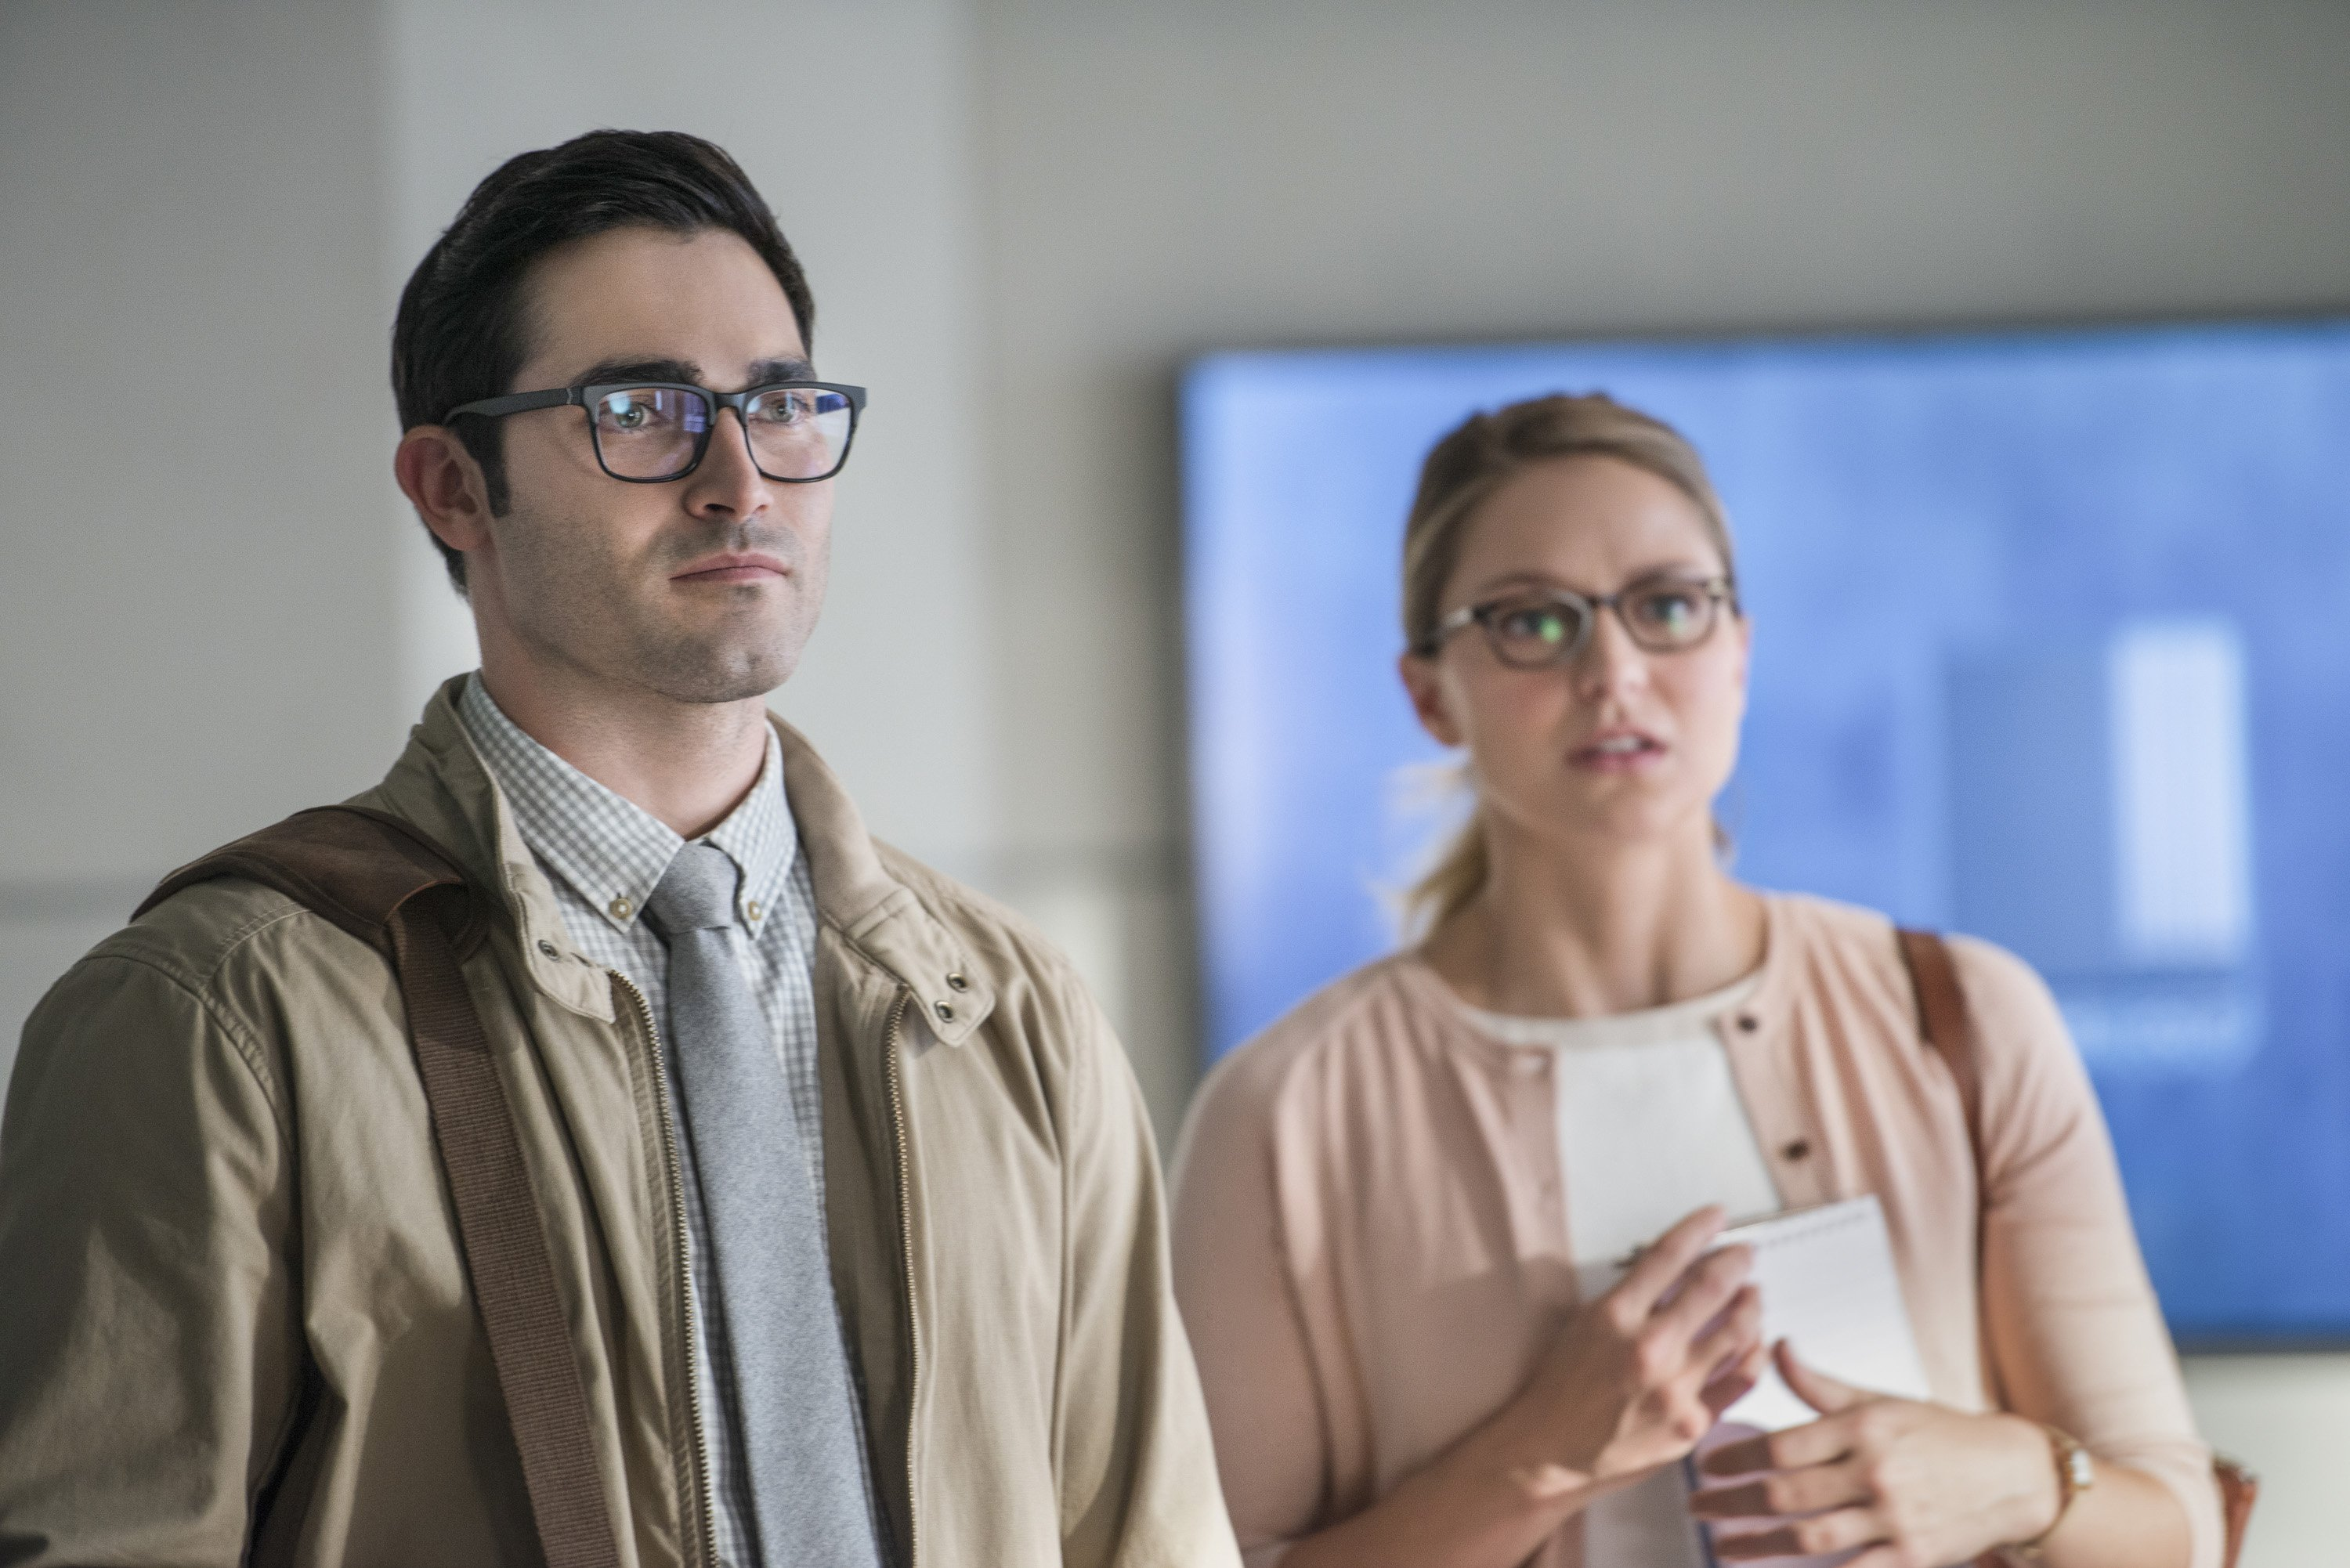 Clark and Kara in the Supergirl Season 2 premiere